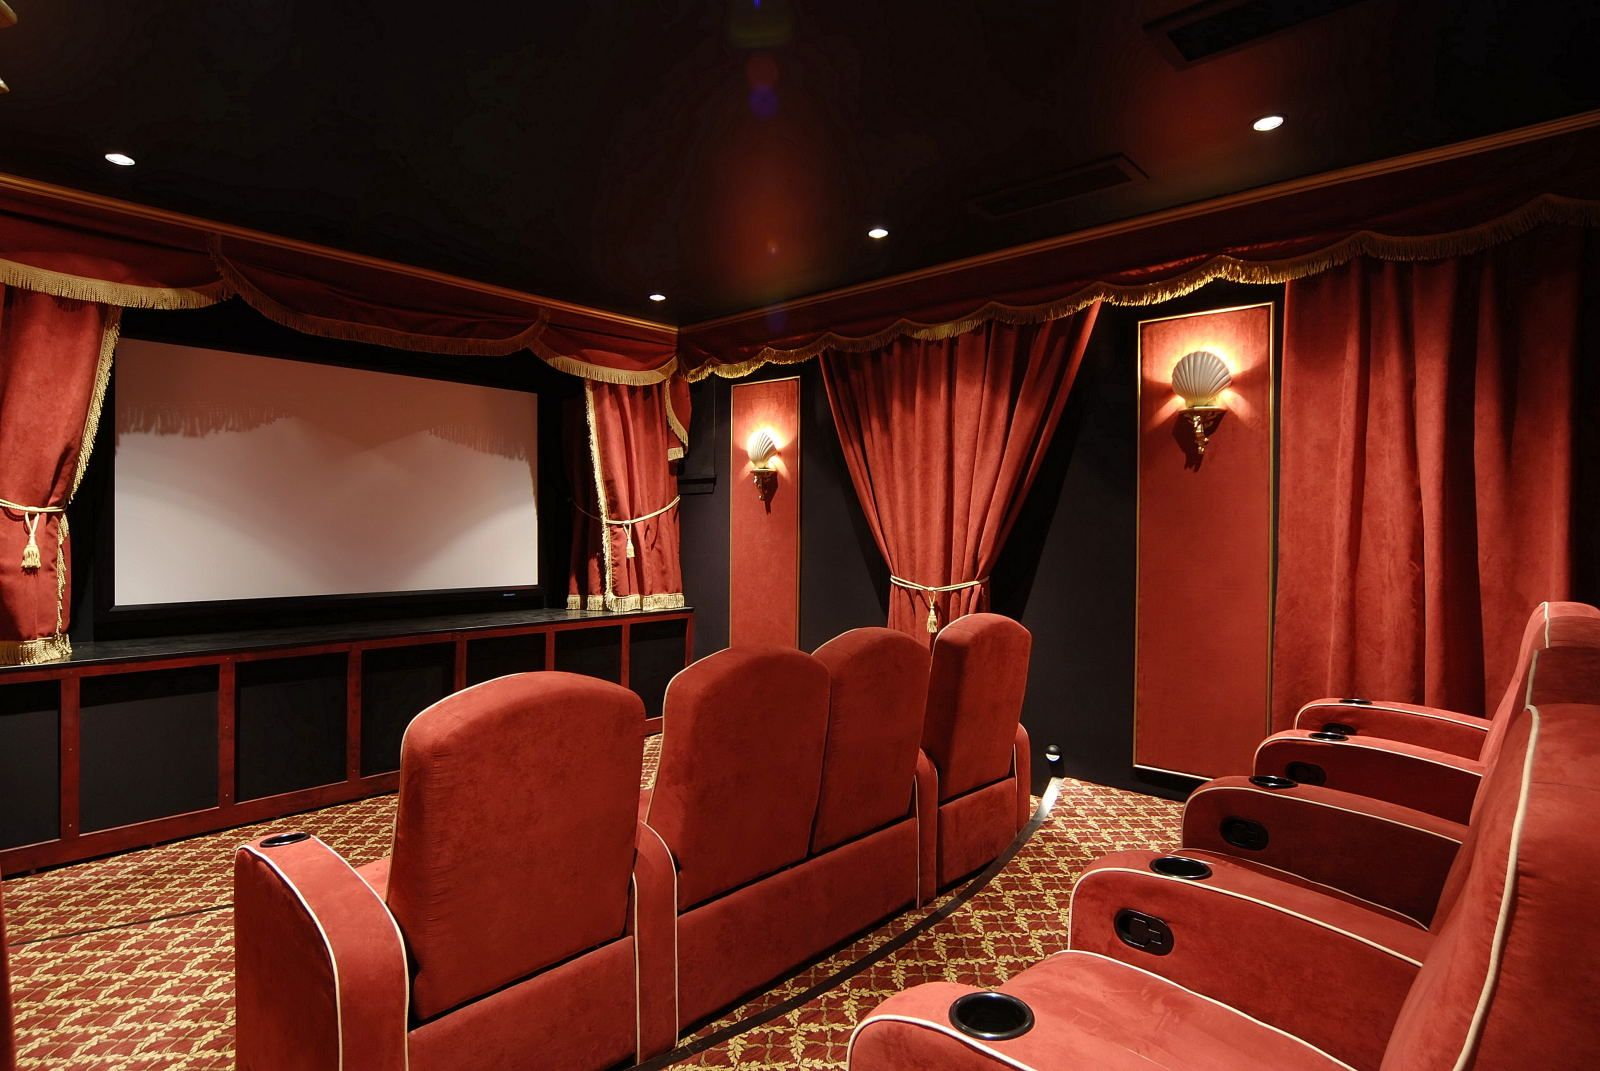 Charming Media Room Curtain Ideas Part - 3: Decorating Your Basement Media Room Ideas And Design Needs Some Planning To  Create The Same Cinema